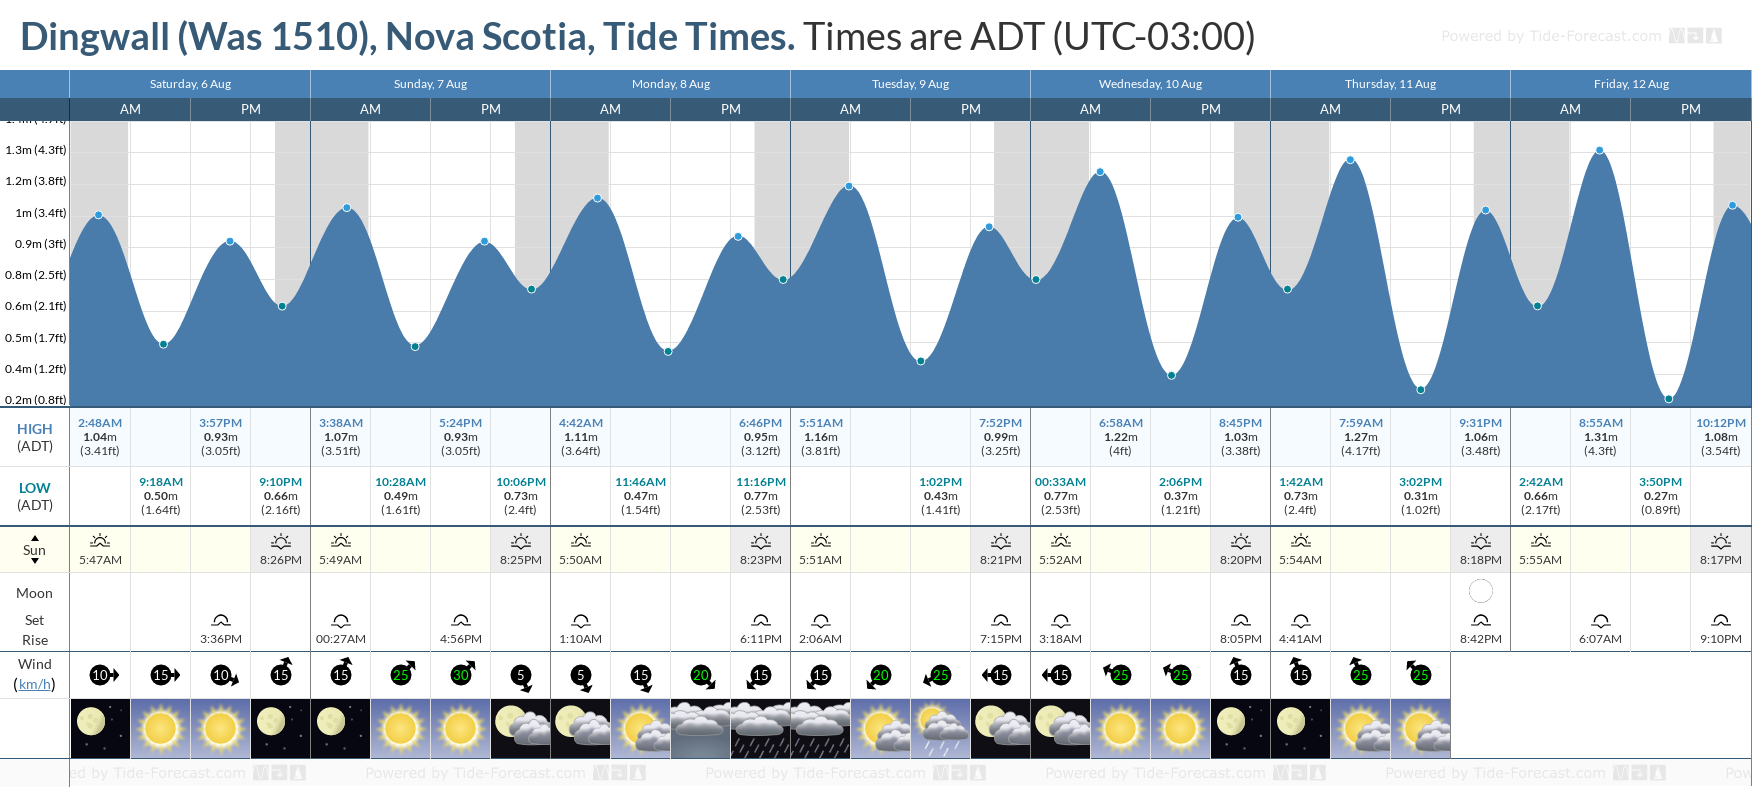 Dingwall (Was 1510), Nova Scotia Tide Chart including high and low tide tide times for the next 7 days